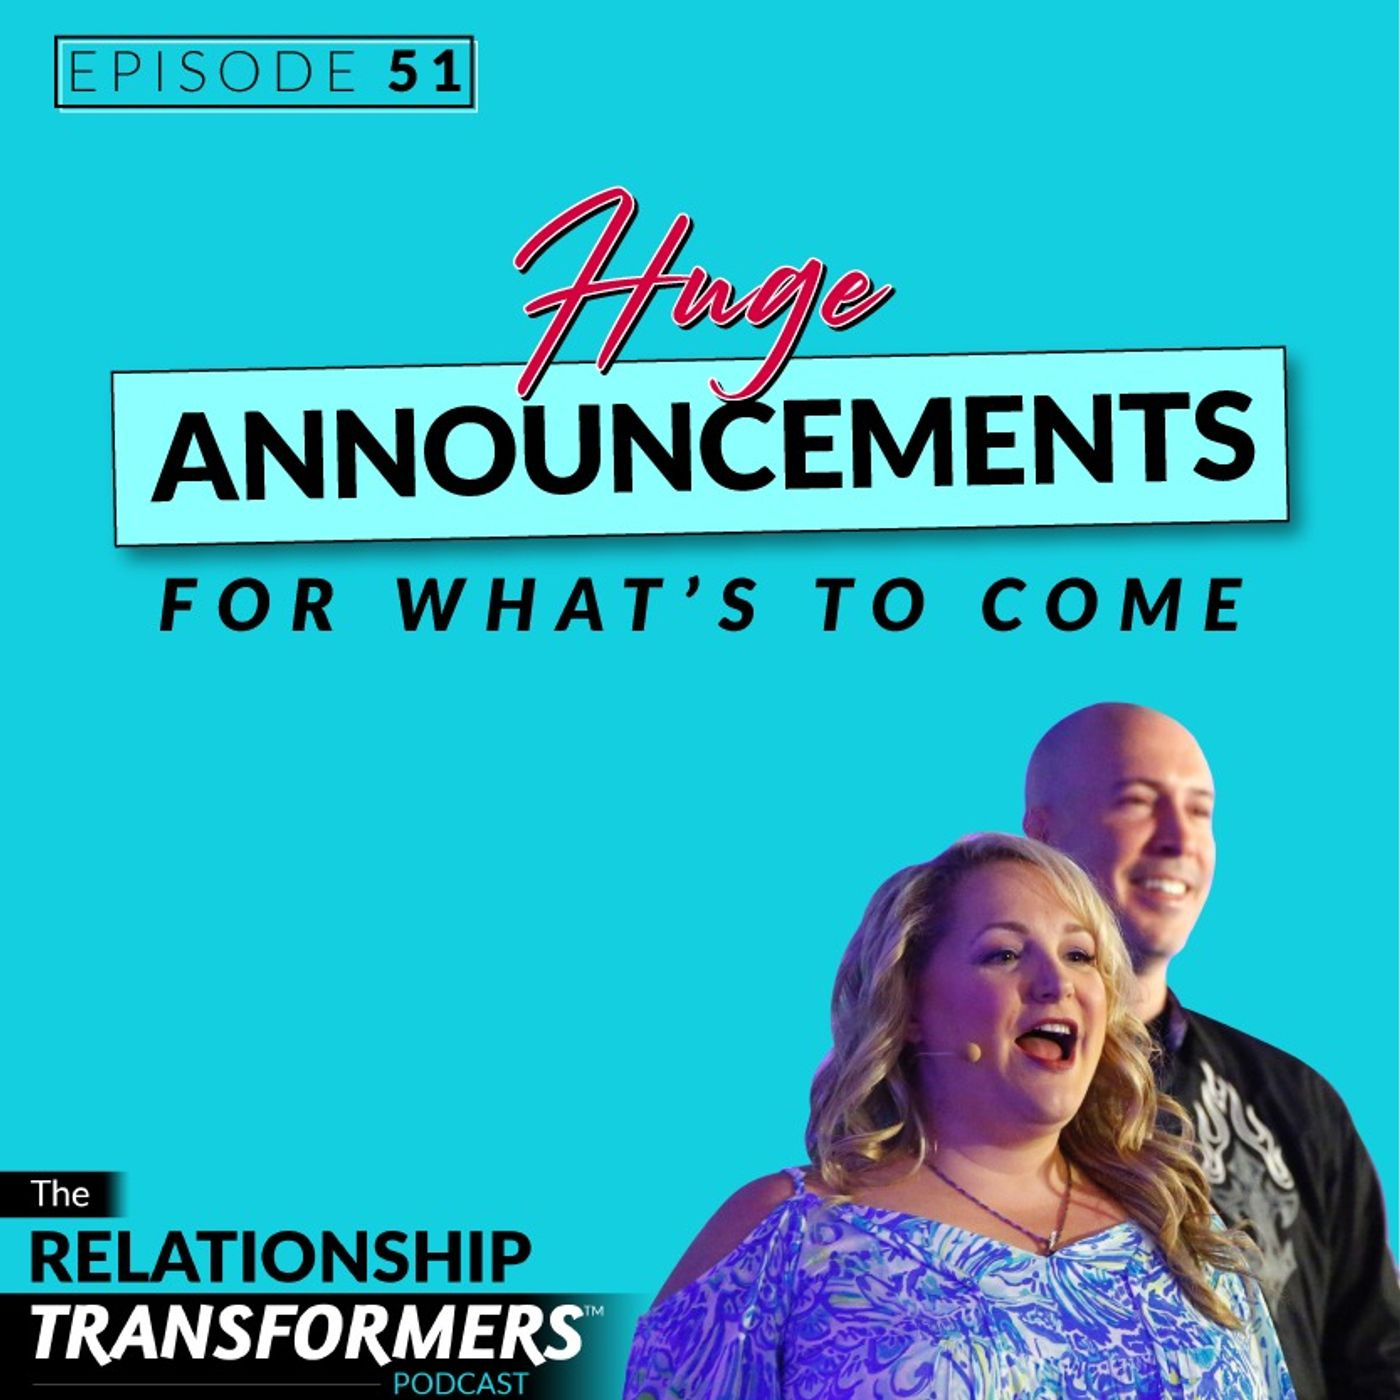 Relationship Transformers - Huge Announcements For What's To Come